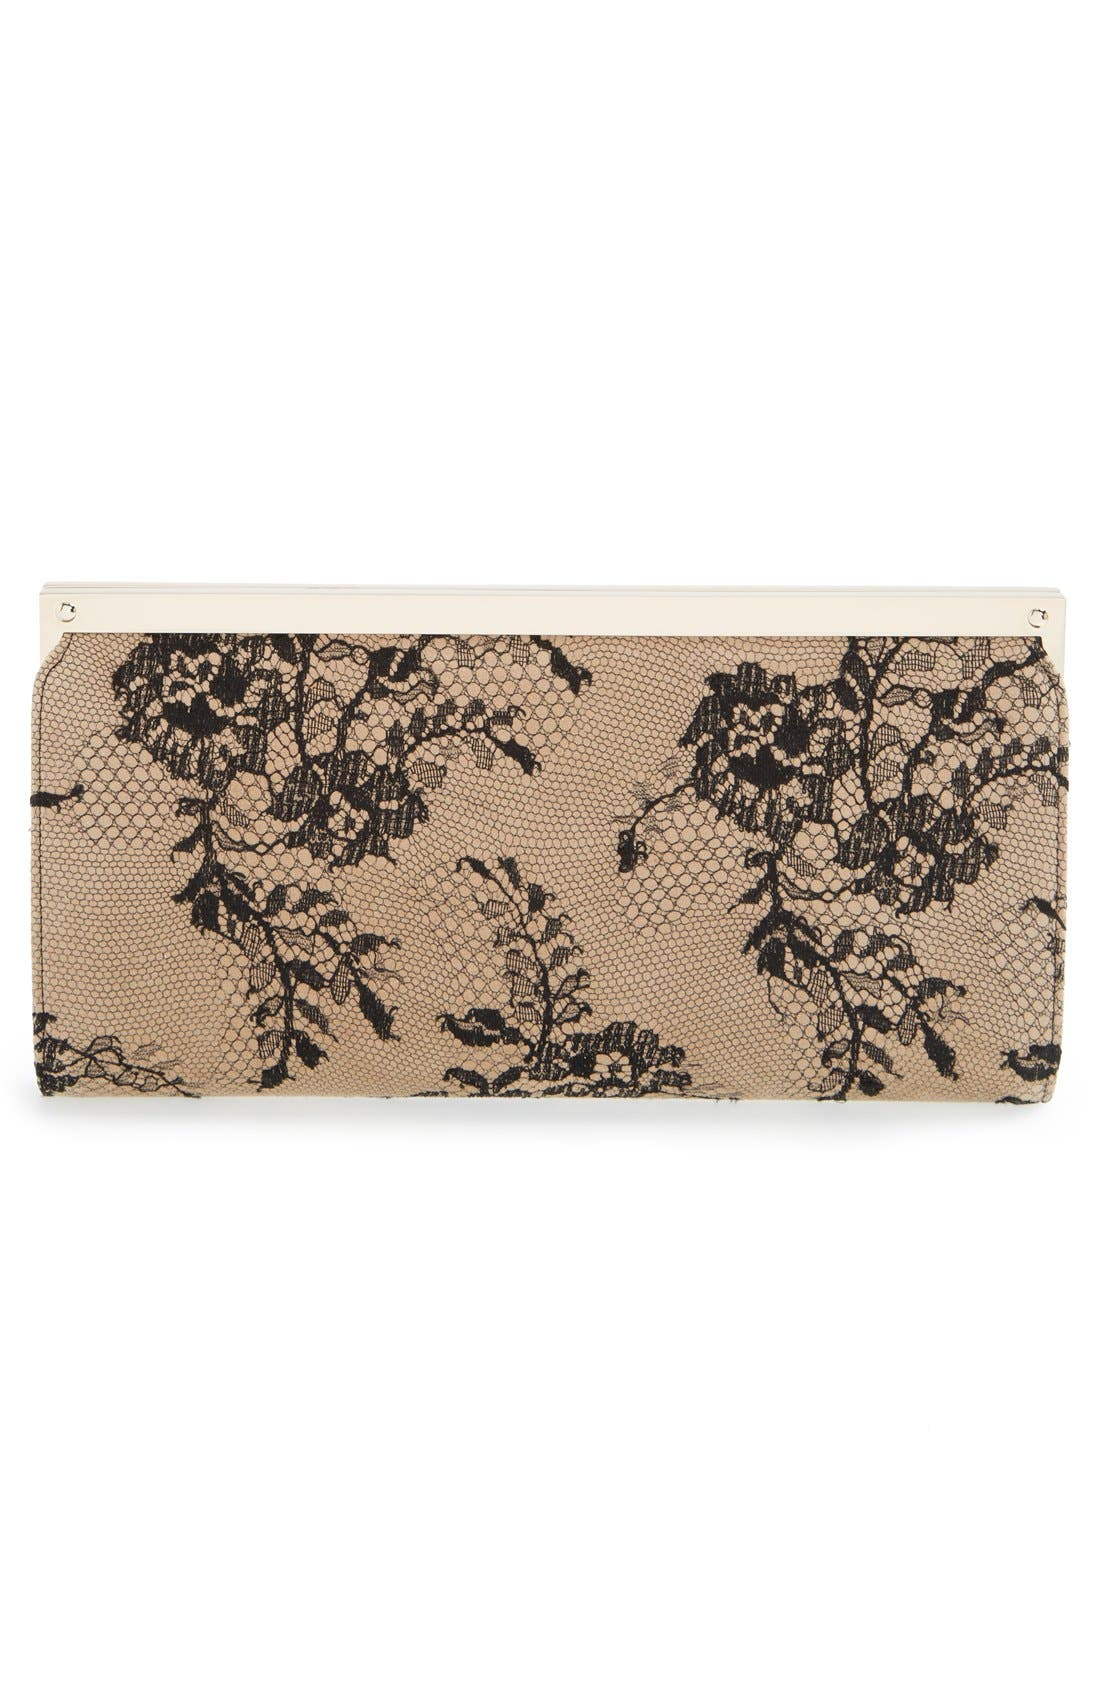 Camille Lace & Leather Clutch,                             Alternate thumbnail 4, color,                             001